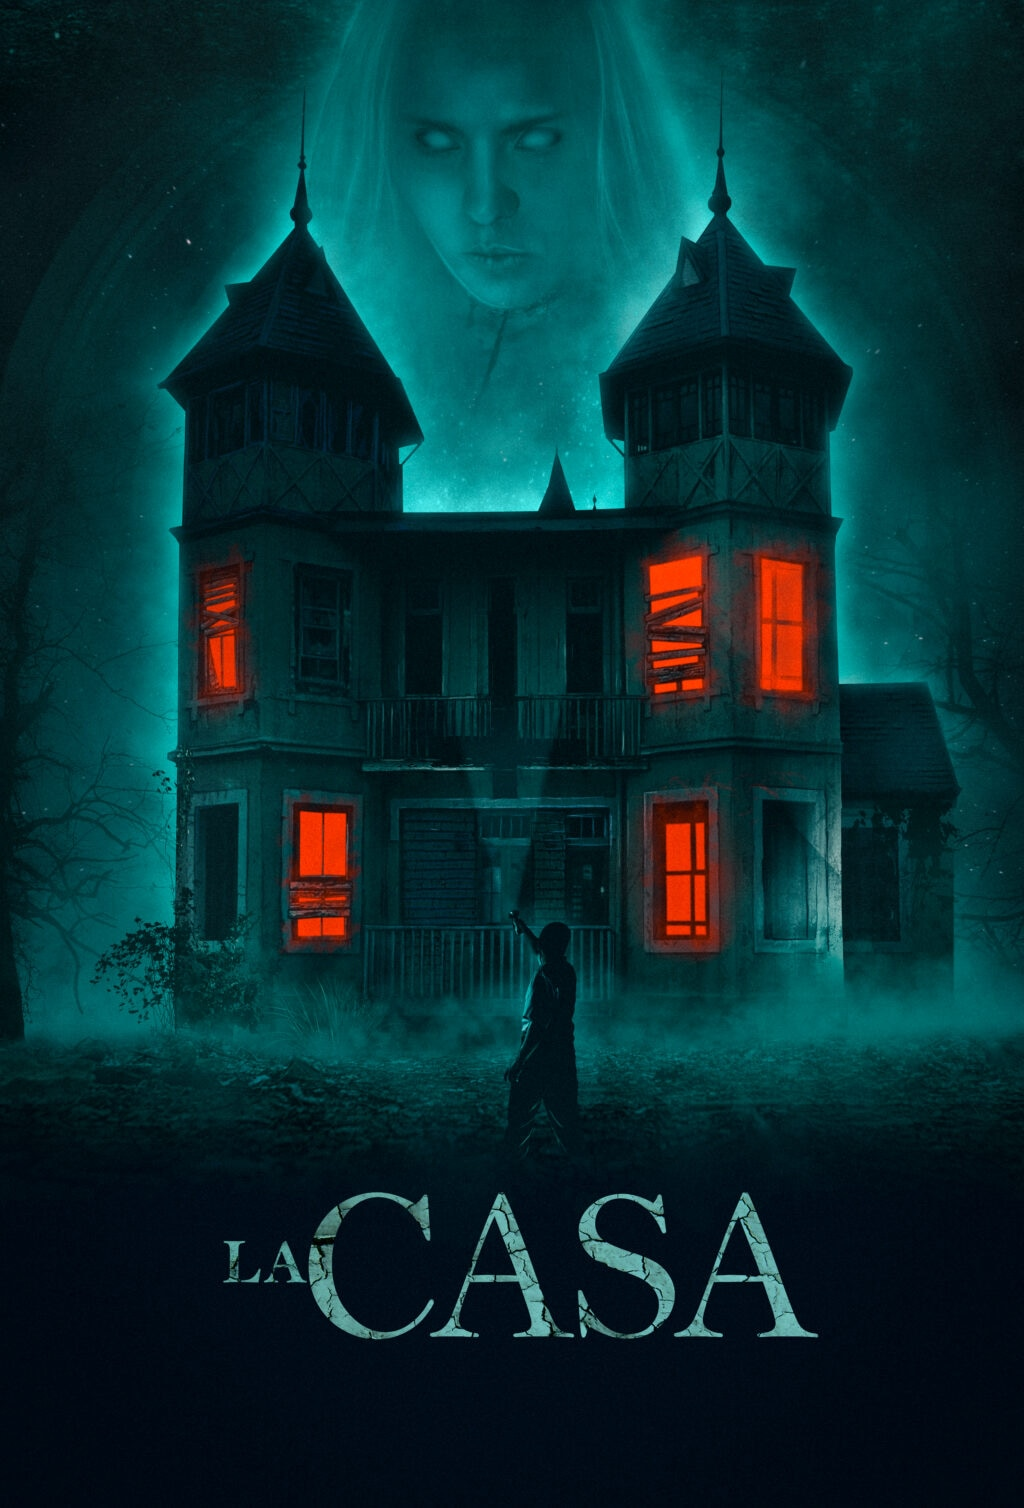 LaCasaPosterNew 1024x1508 - DREAD's First Release of 2021 LA CASA is Now Streaming + Pre-Order Blu-Ray NOW!